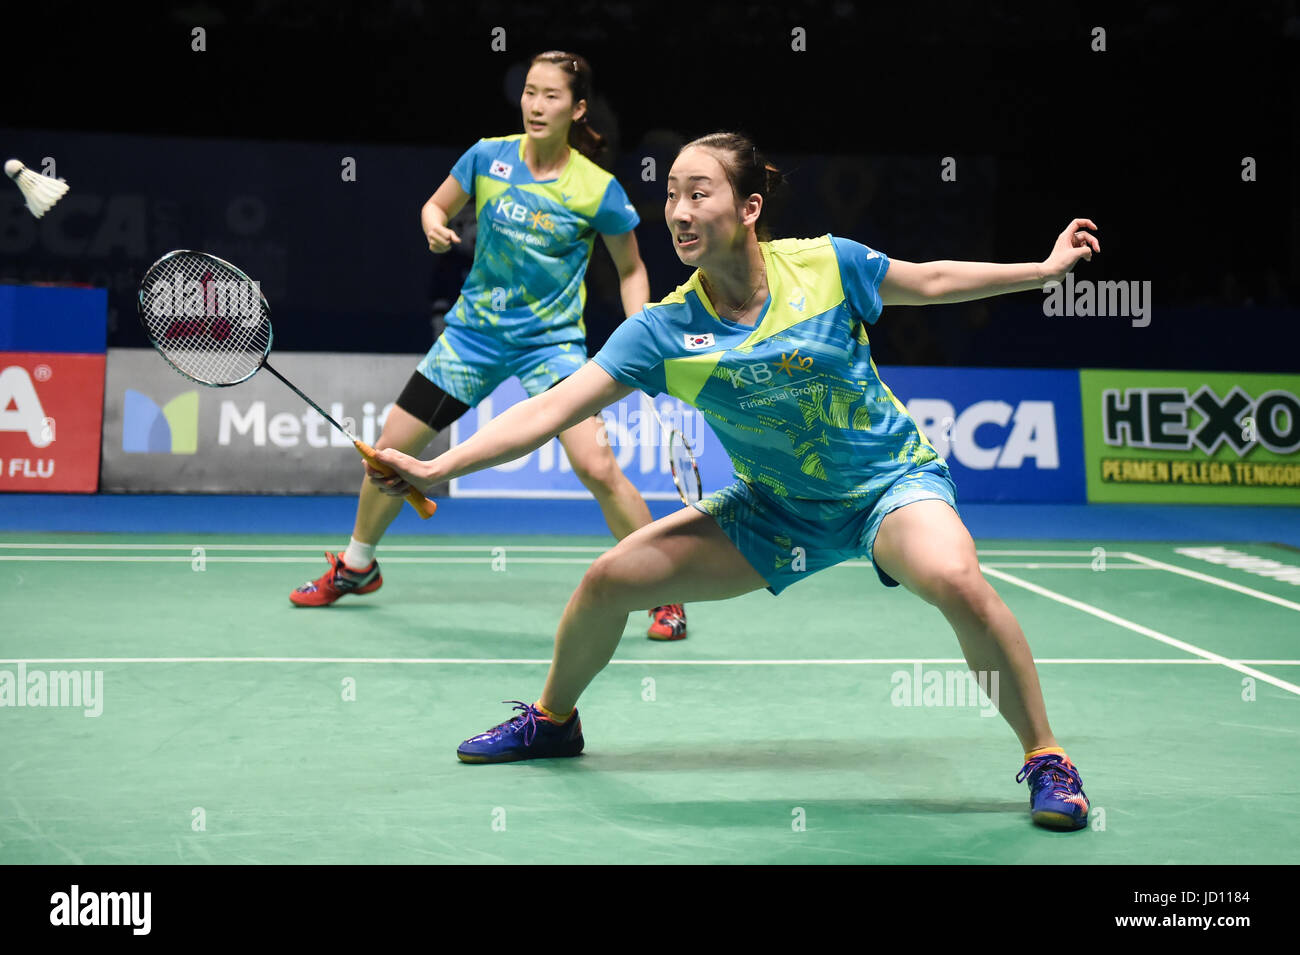 Jakarta Indonesia 18th June 2017 Lee So Hee R and Chang Ye